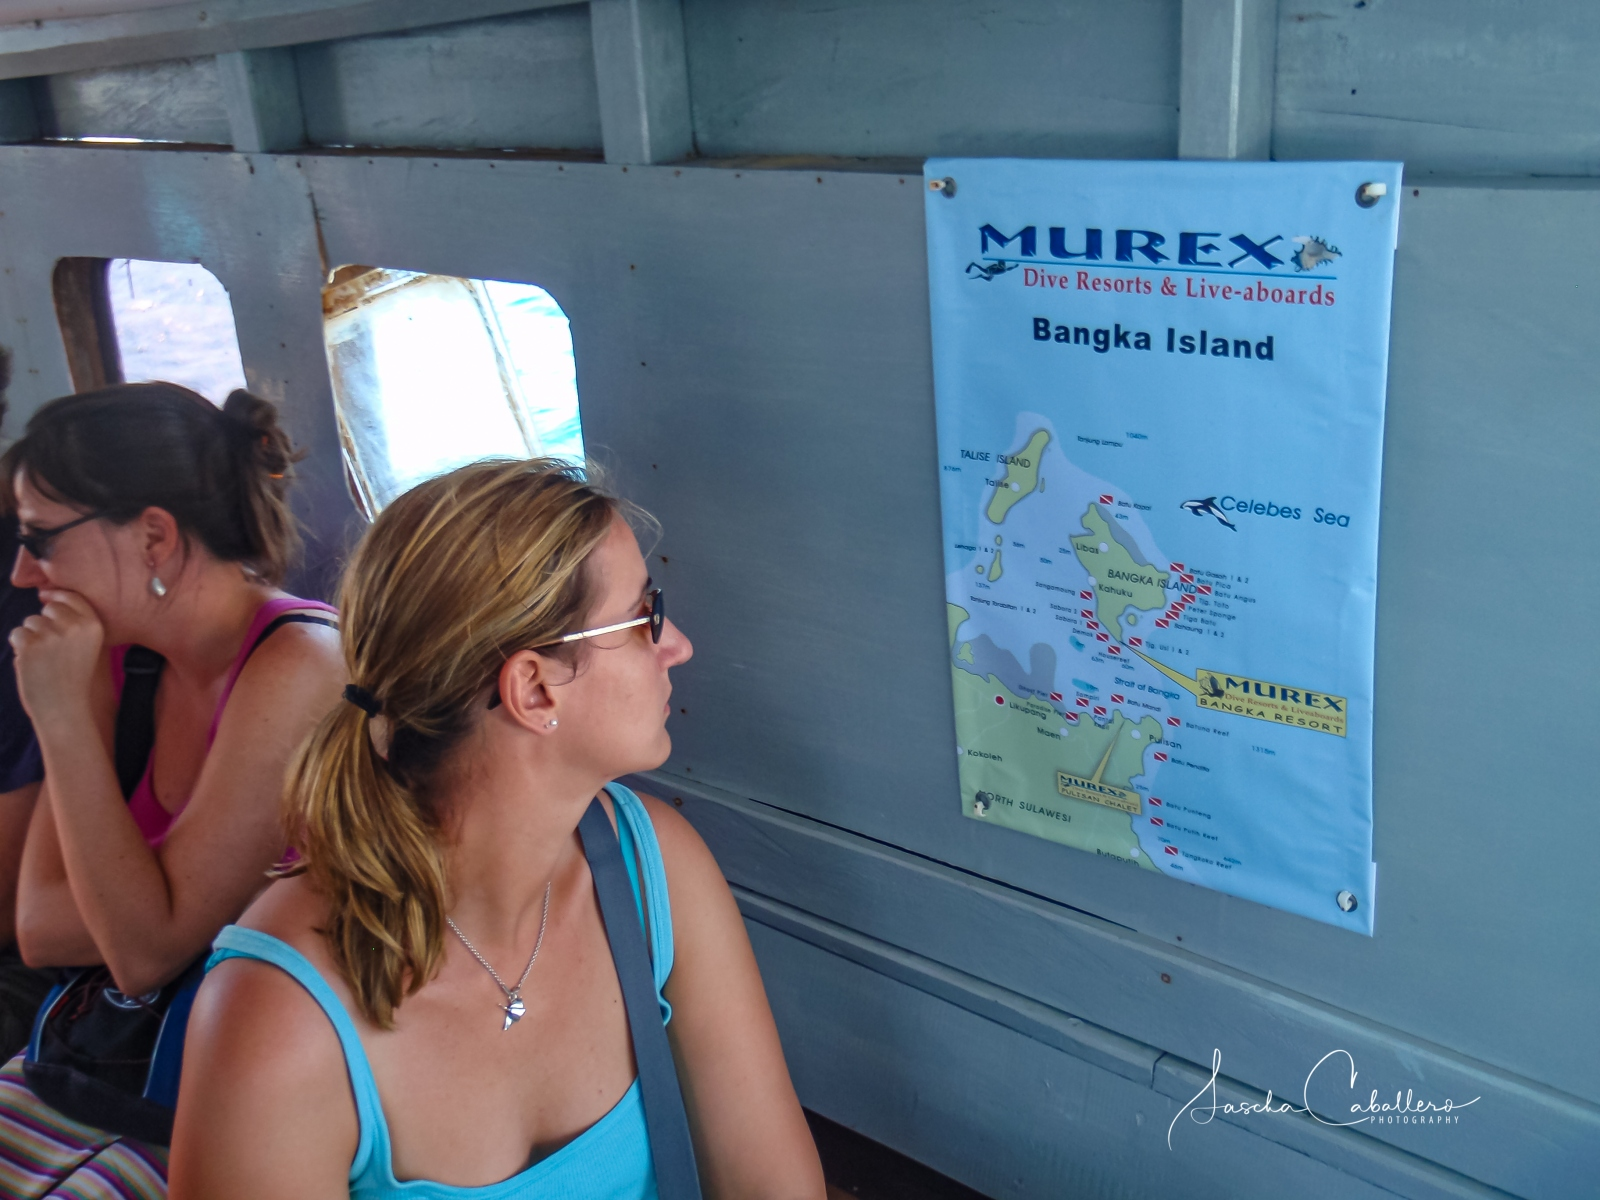 Murex Dive Resort Banka Island